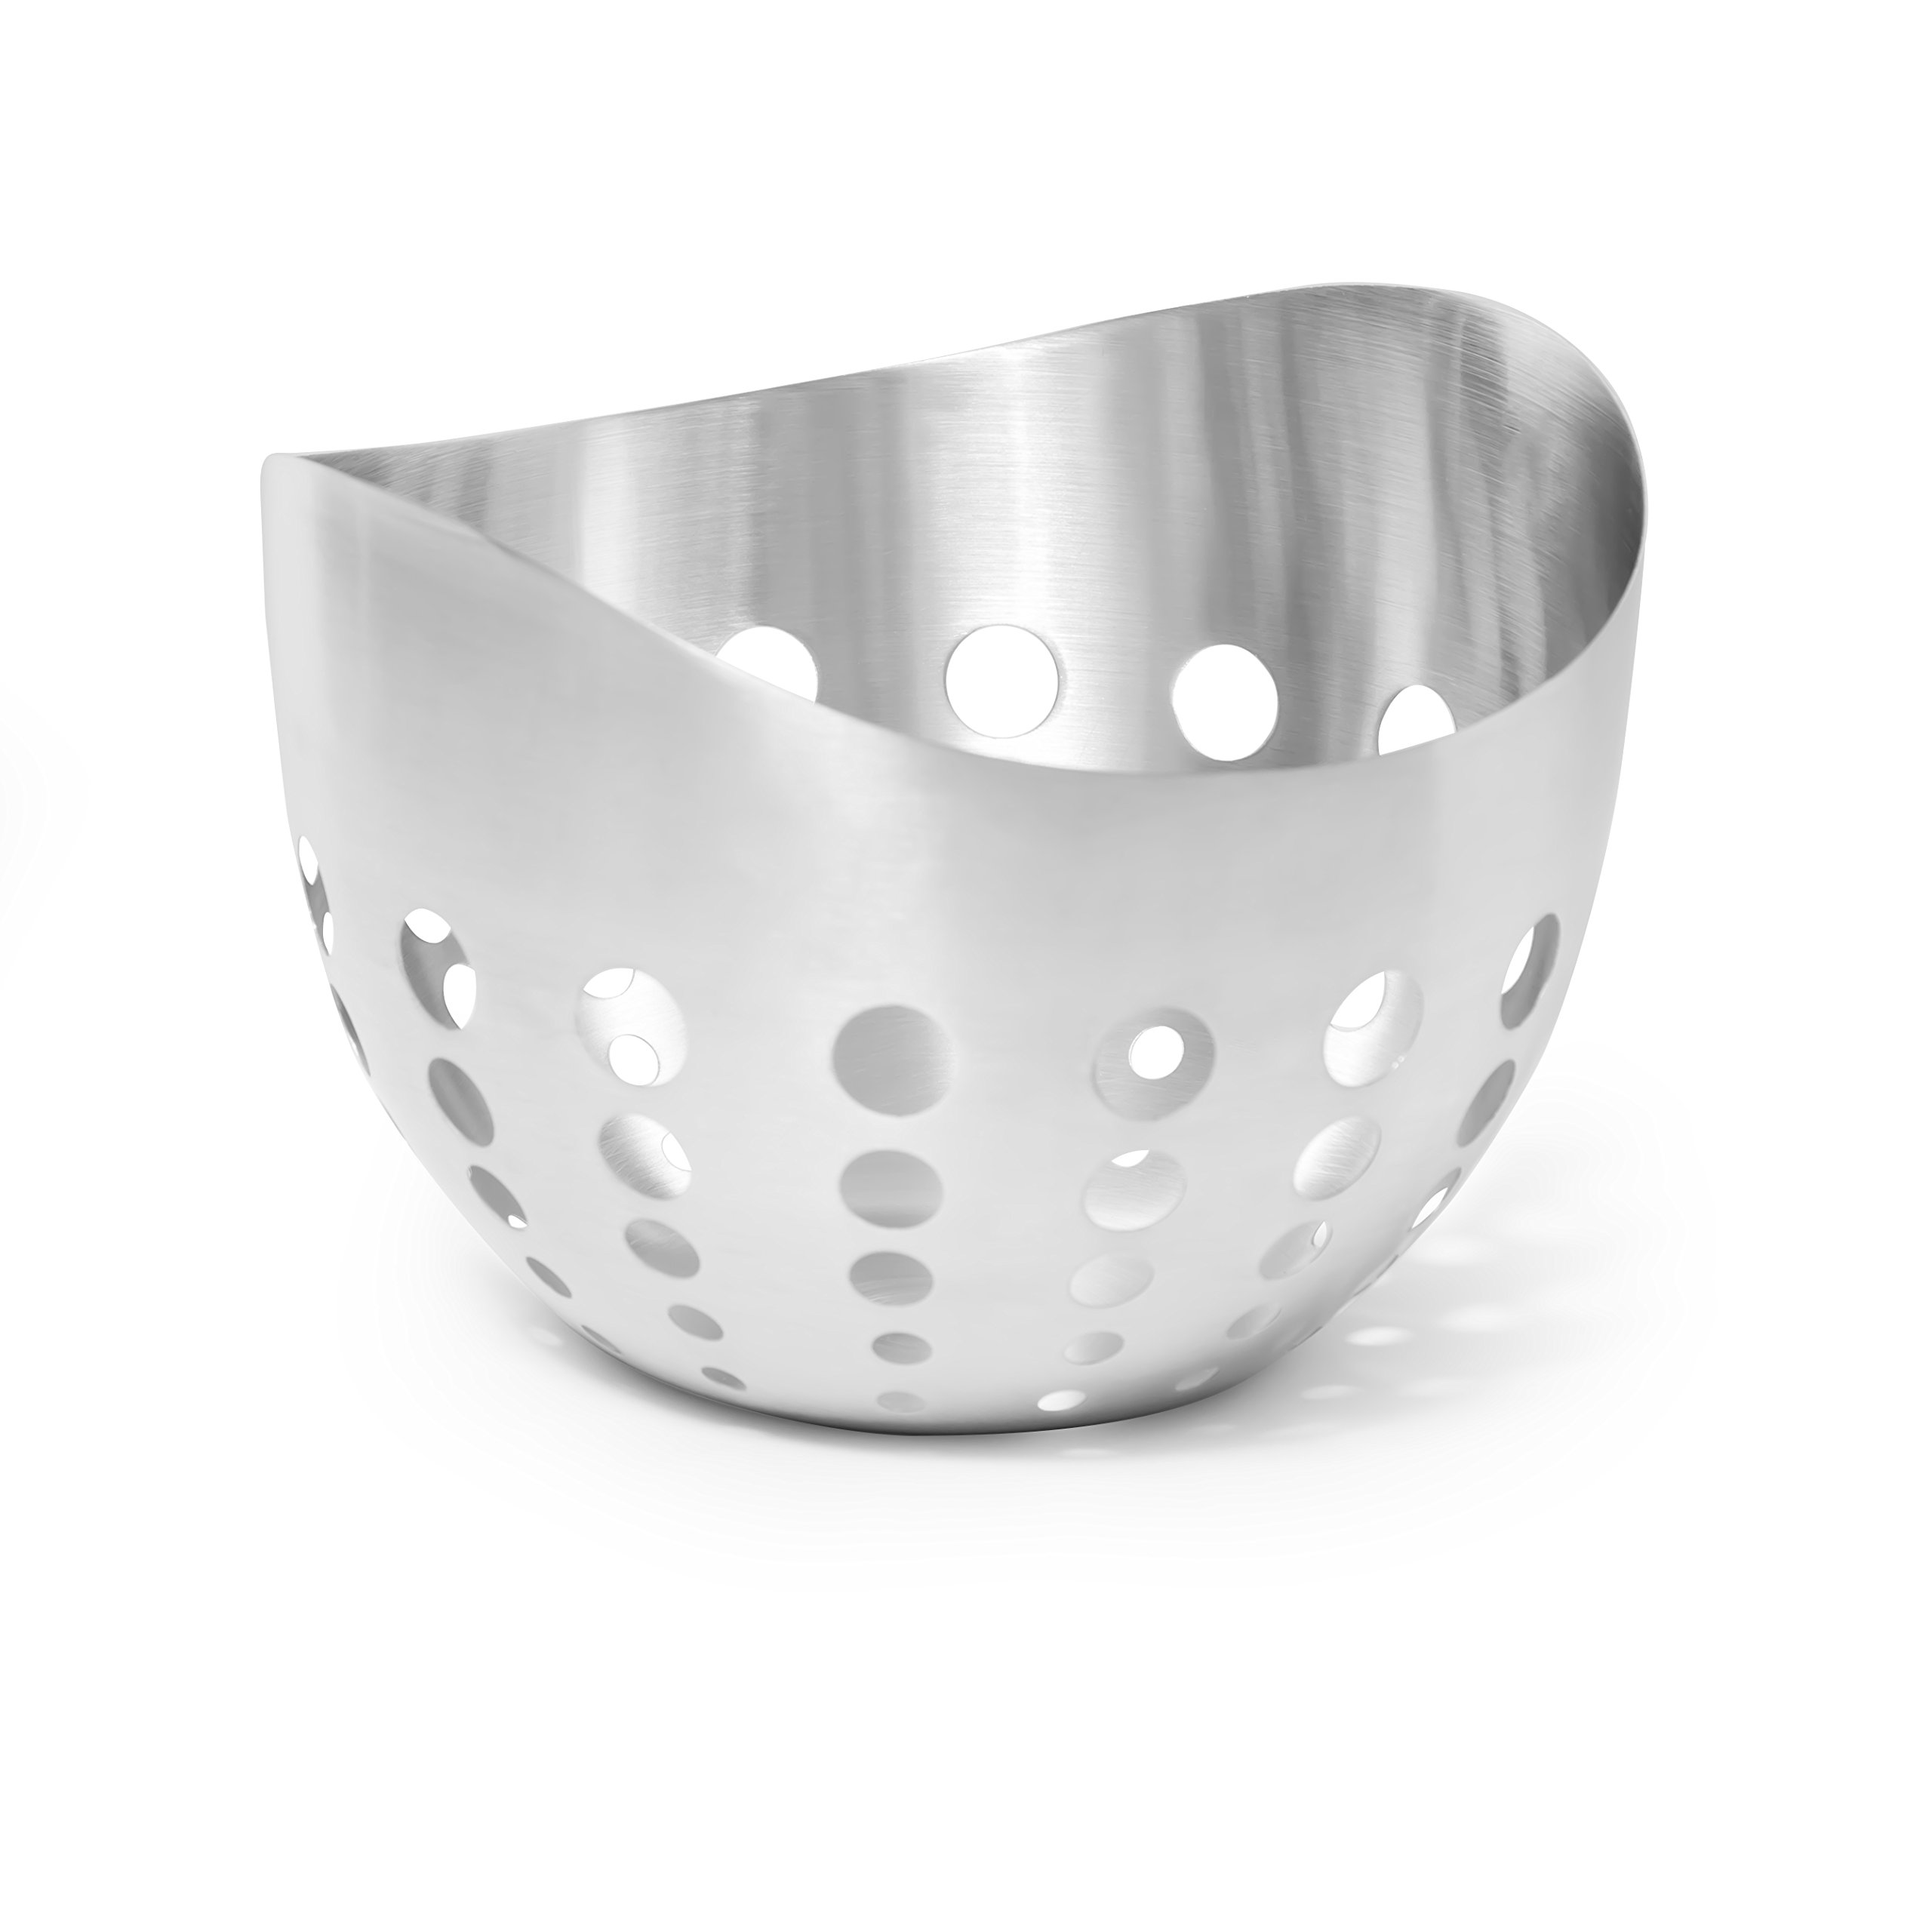 McSunley 752 Polished Prep N Cook Fruit and Bread Basket, Stainless Steel